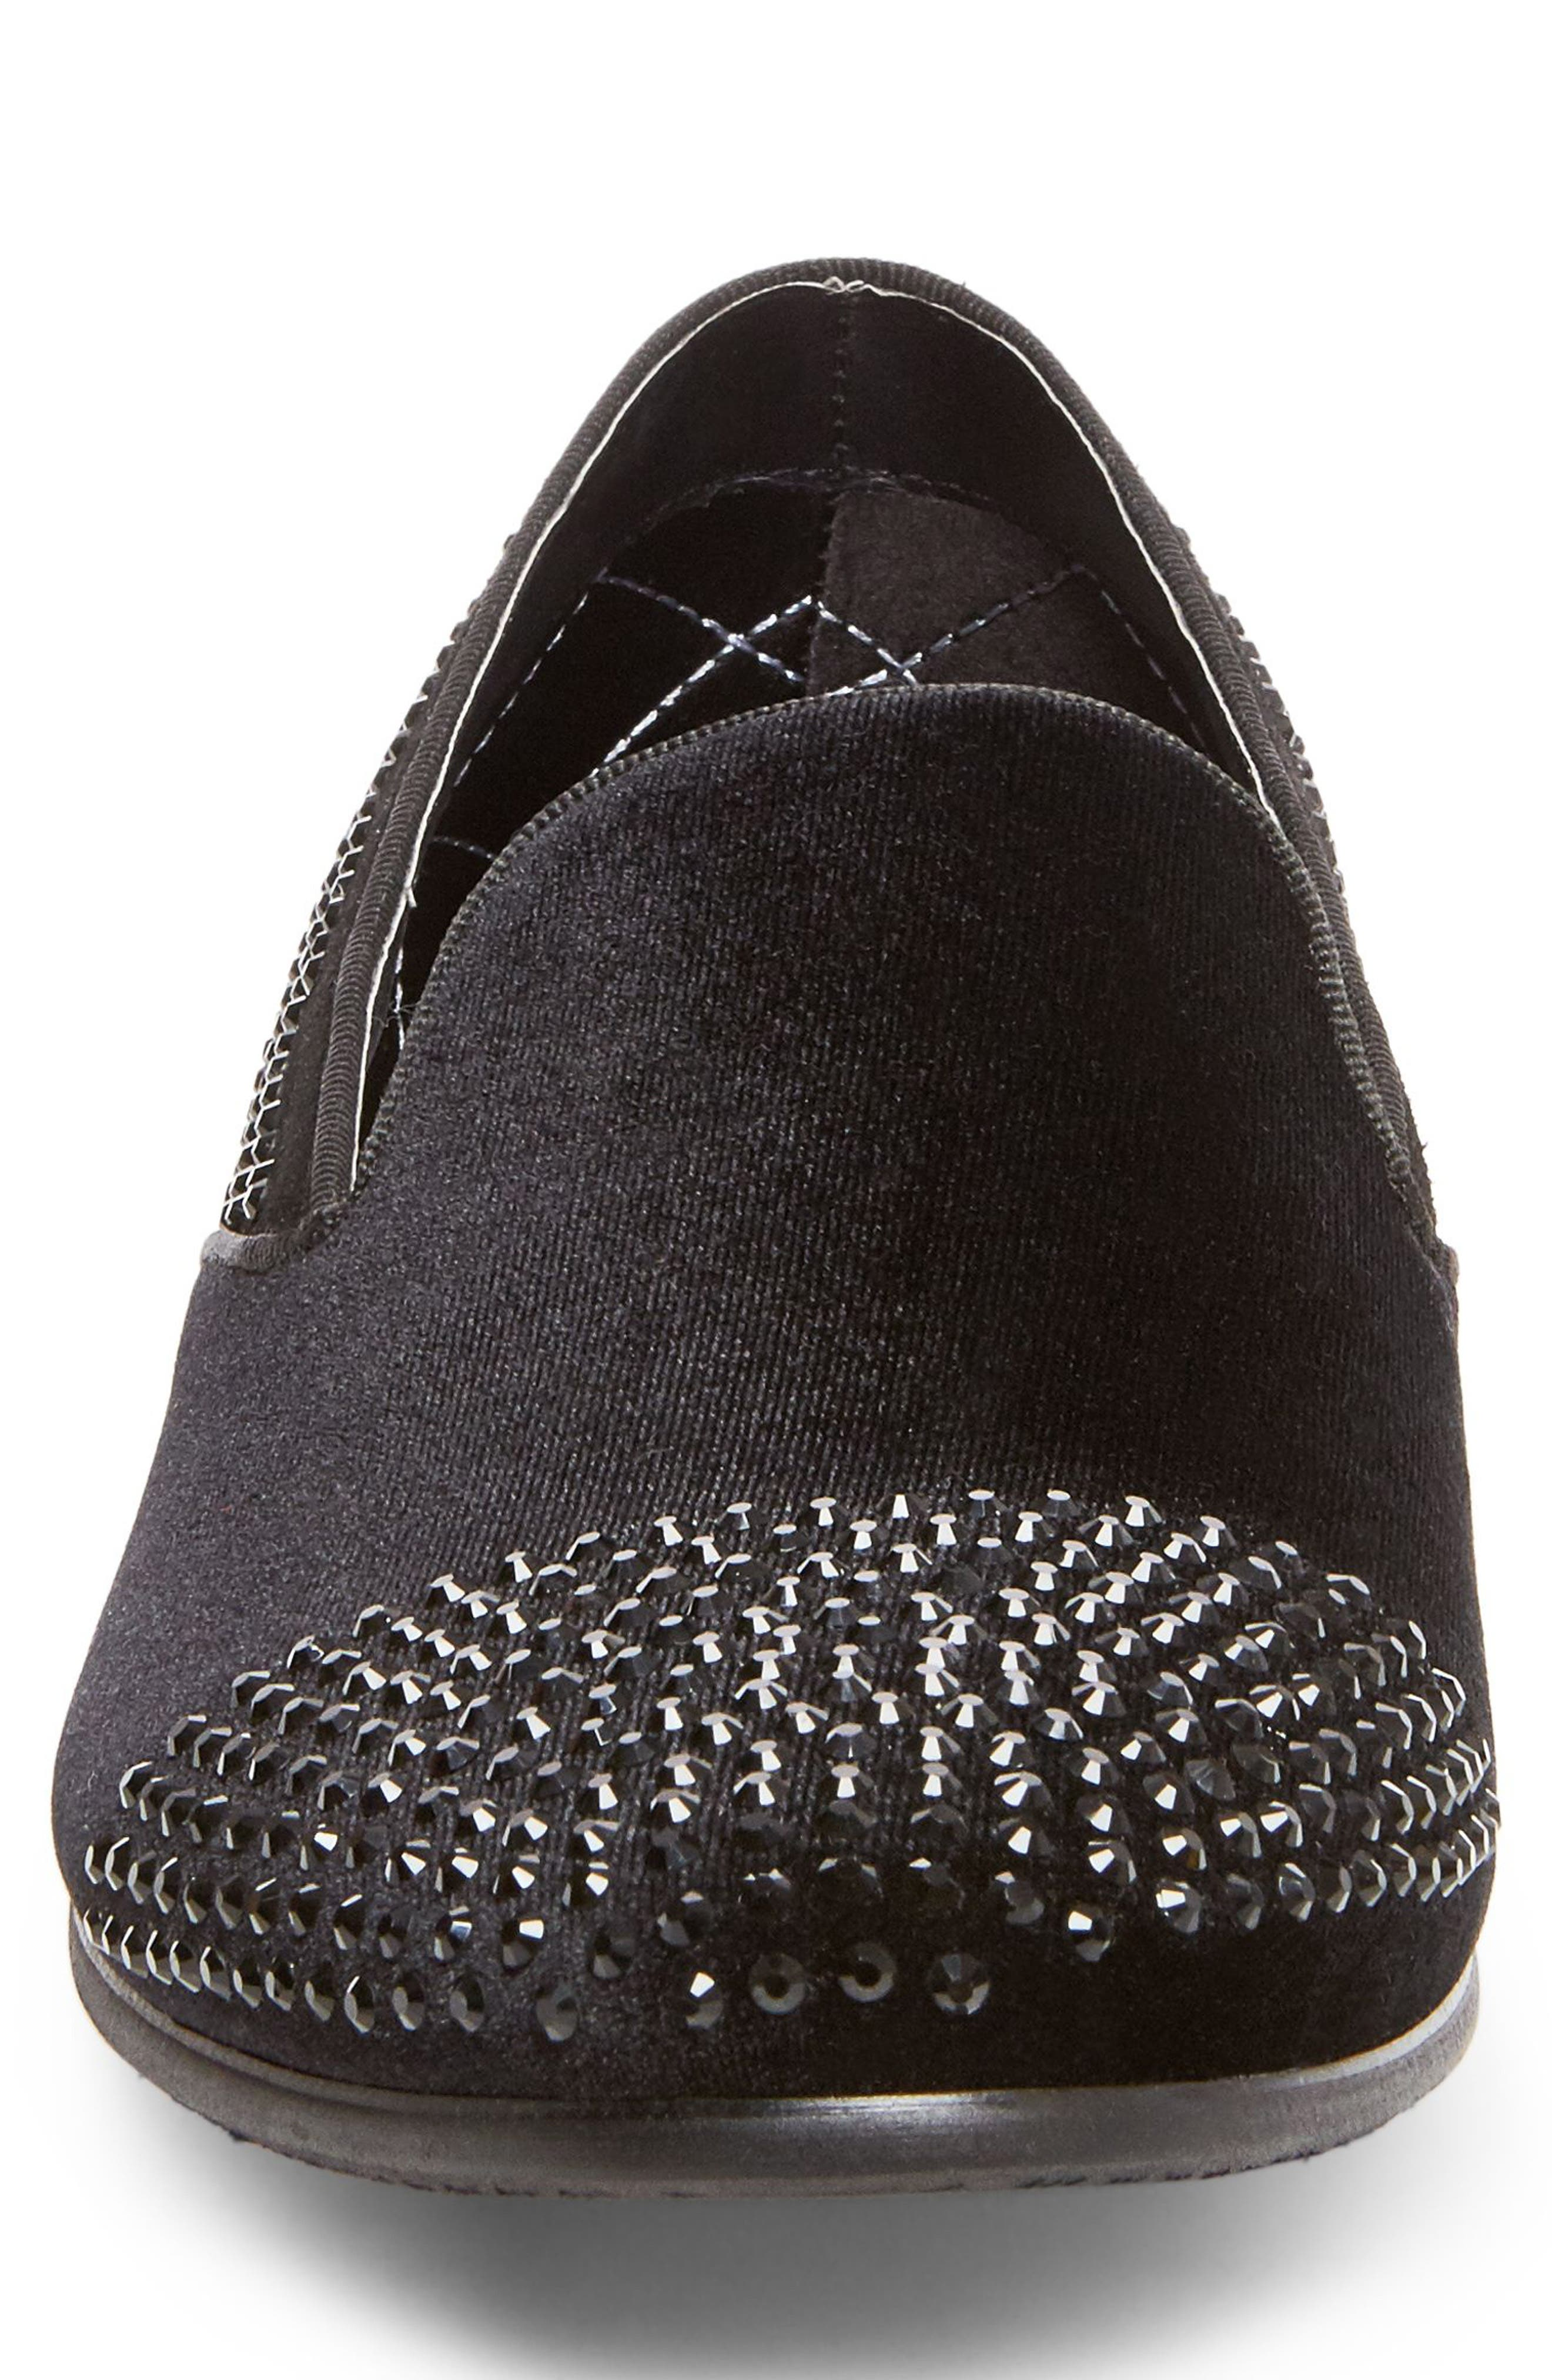 Clarity Loafer,                             Alternate thumbnail 4, color,                             Black Fabric